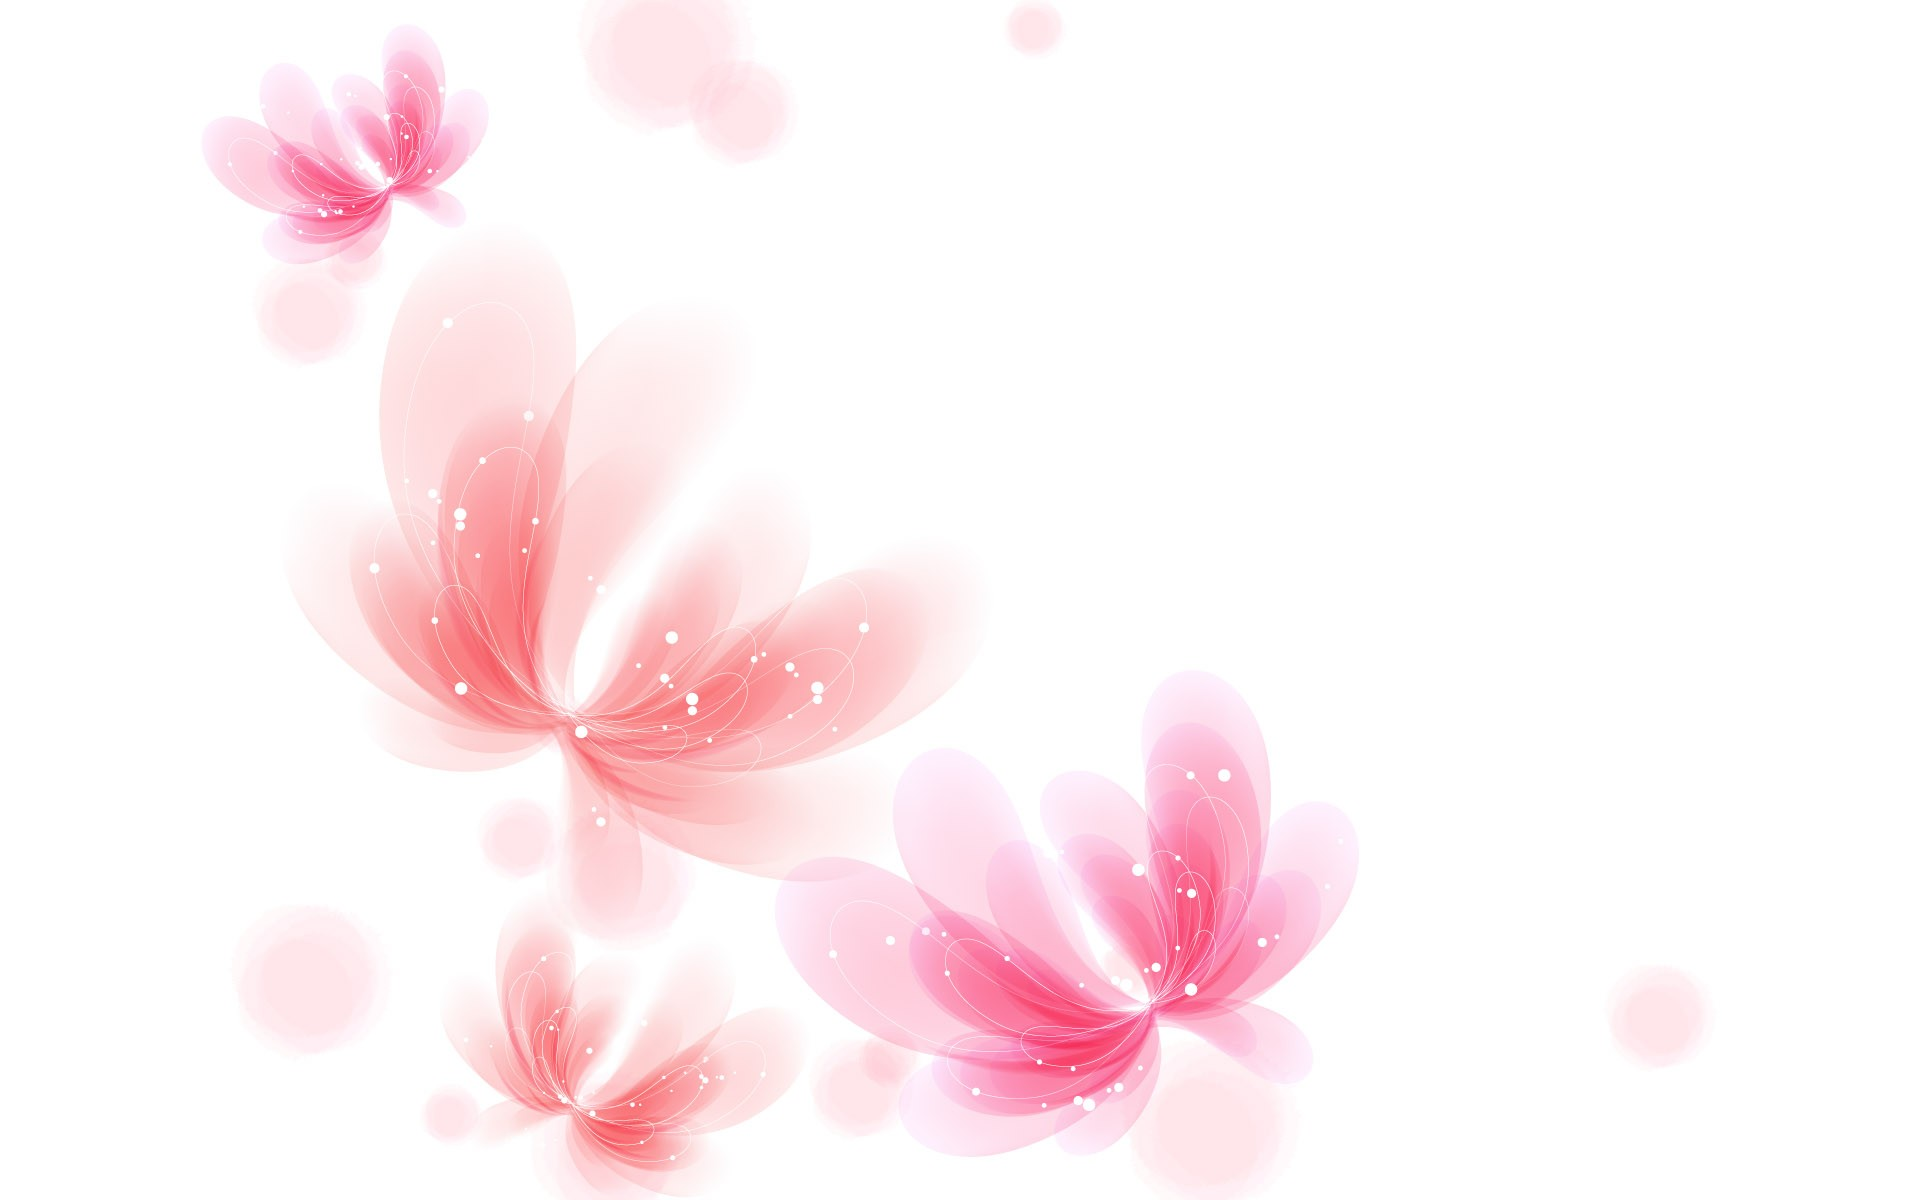 Pink White Wallpaper 1920x1200 Pink White Background 1920x1200